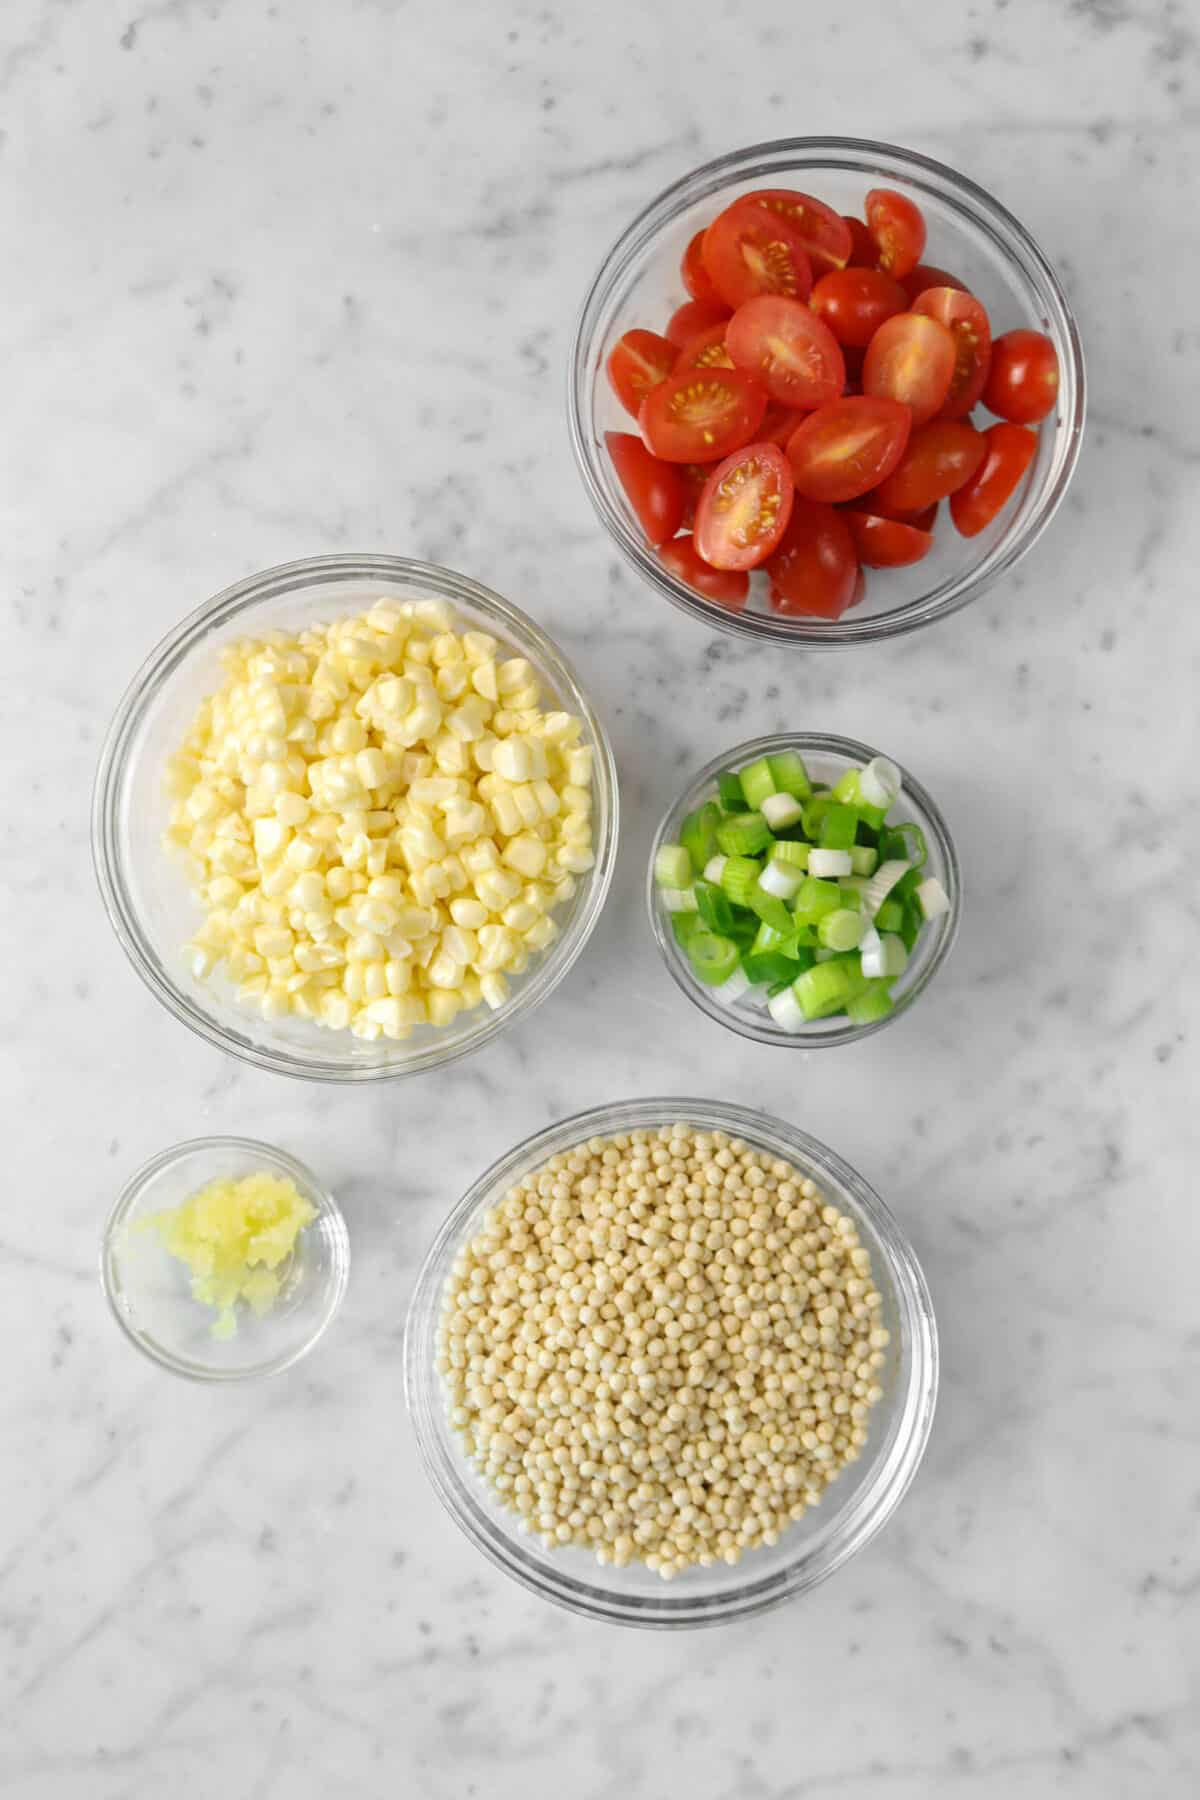 sliced tomatoes, corn, green onions, garlic, and couscous in small bowls